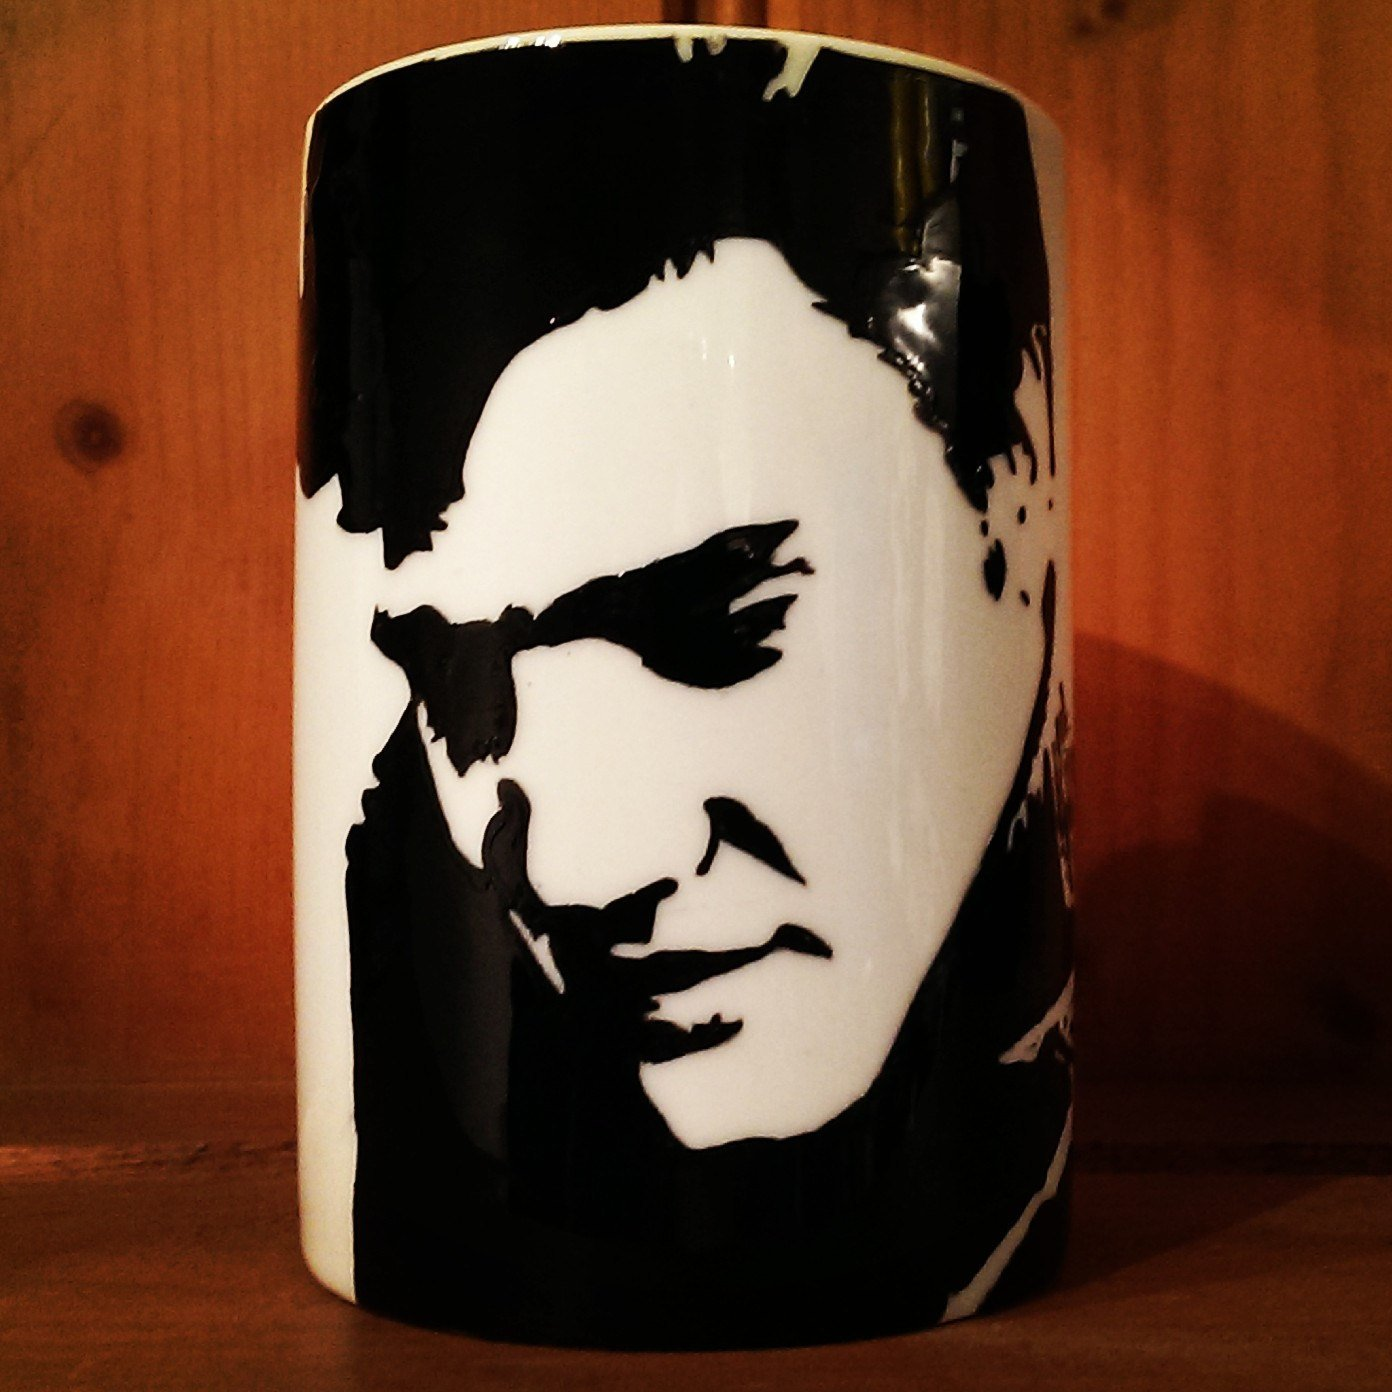 Elvis Presley -.The King of Rock and Roll - Hand Printed Cup